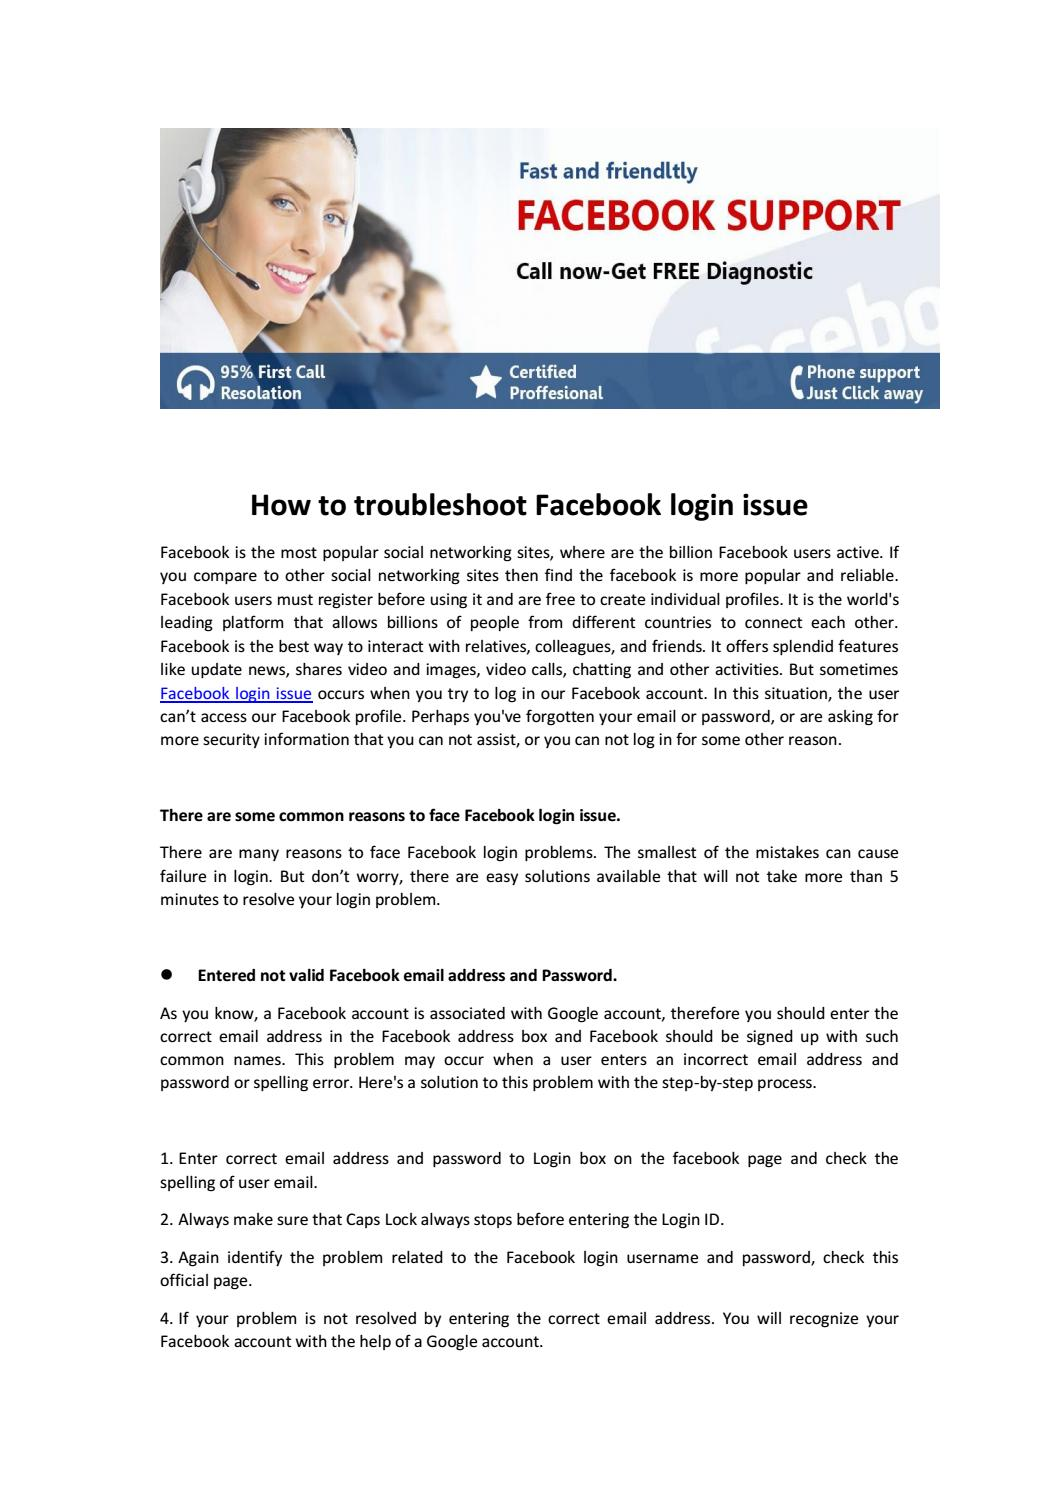 How to troubleshoot facebook login issue2 by carter lee - issuu